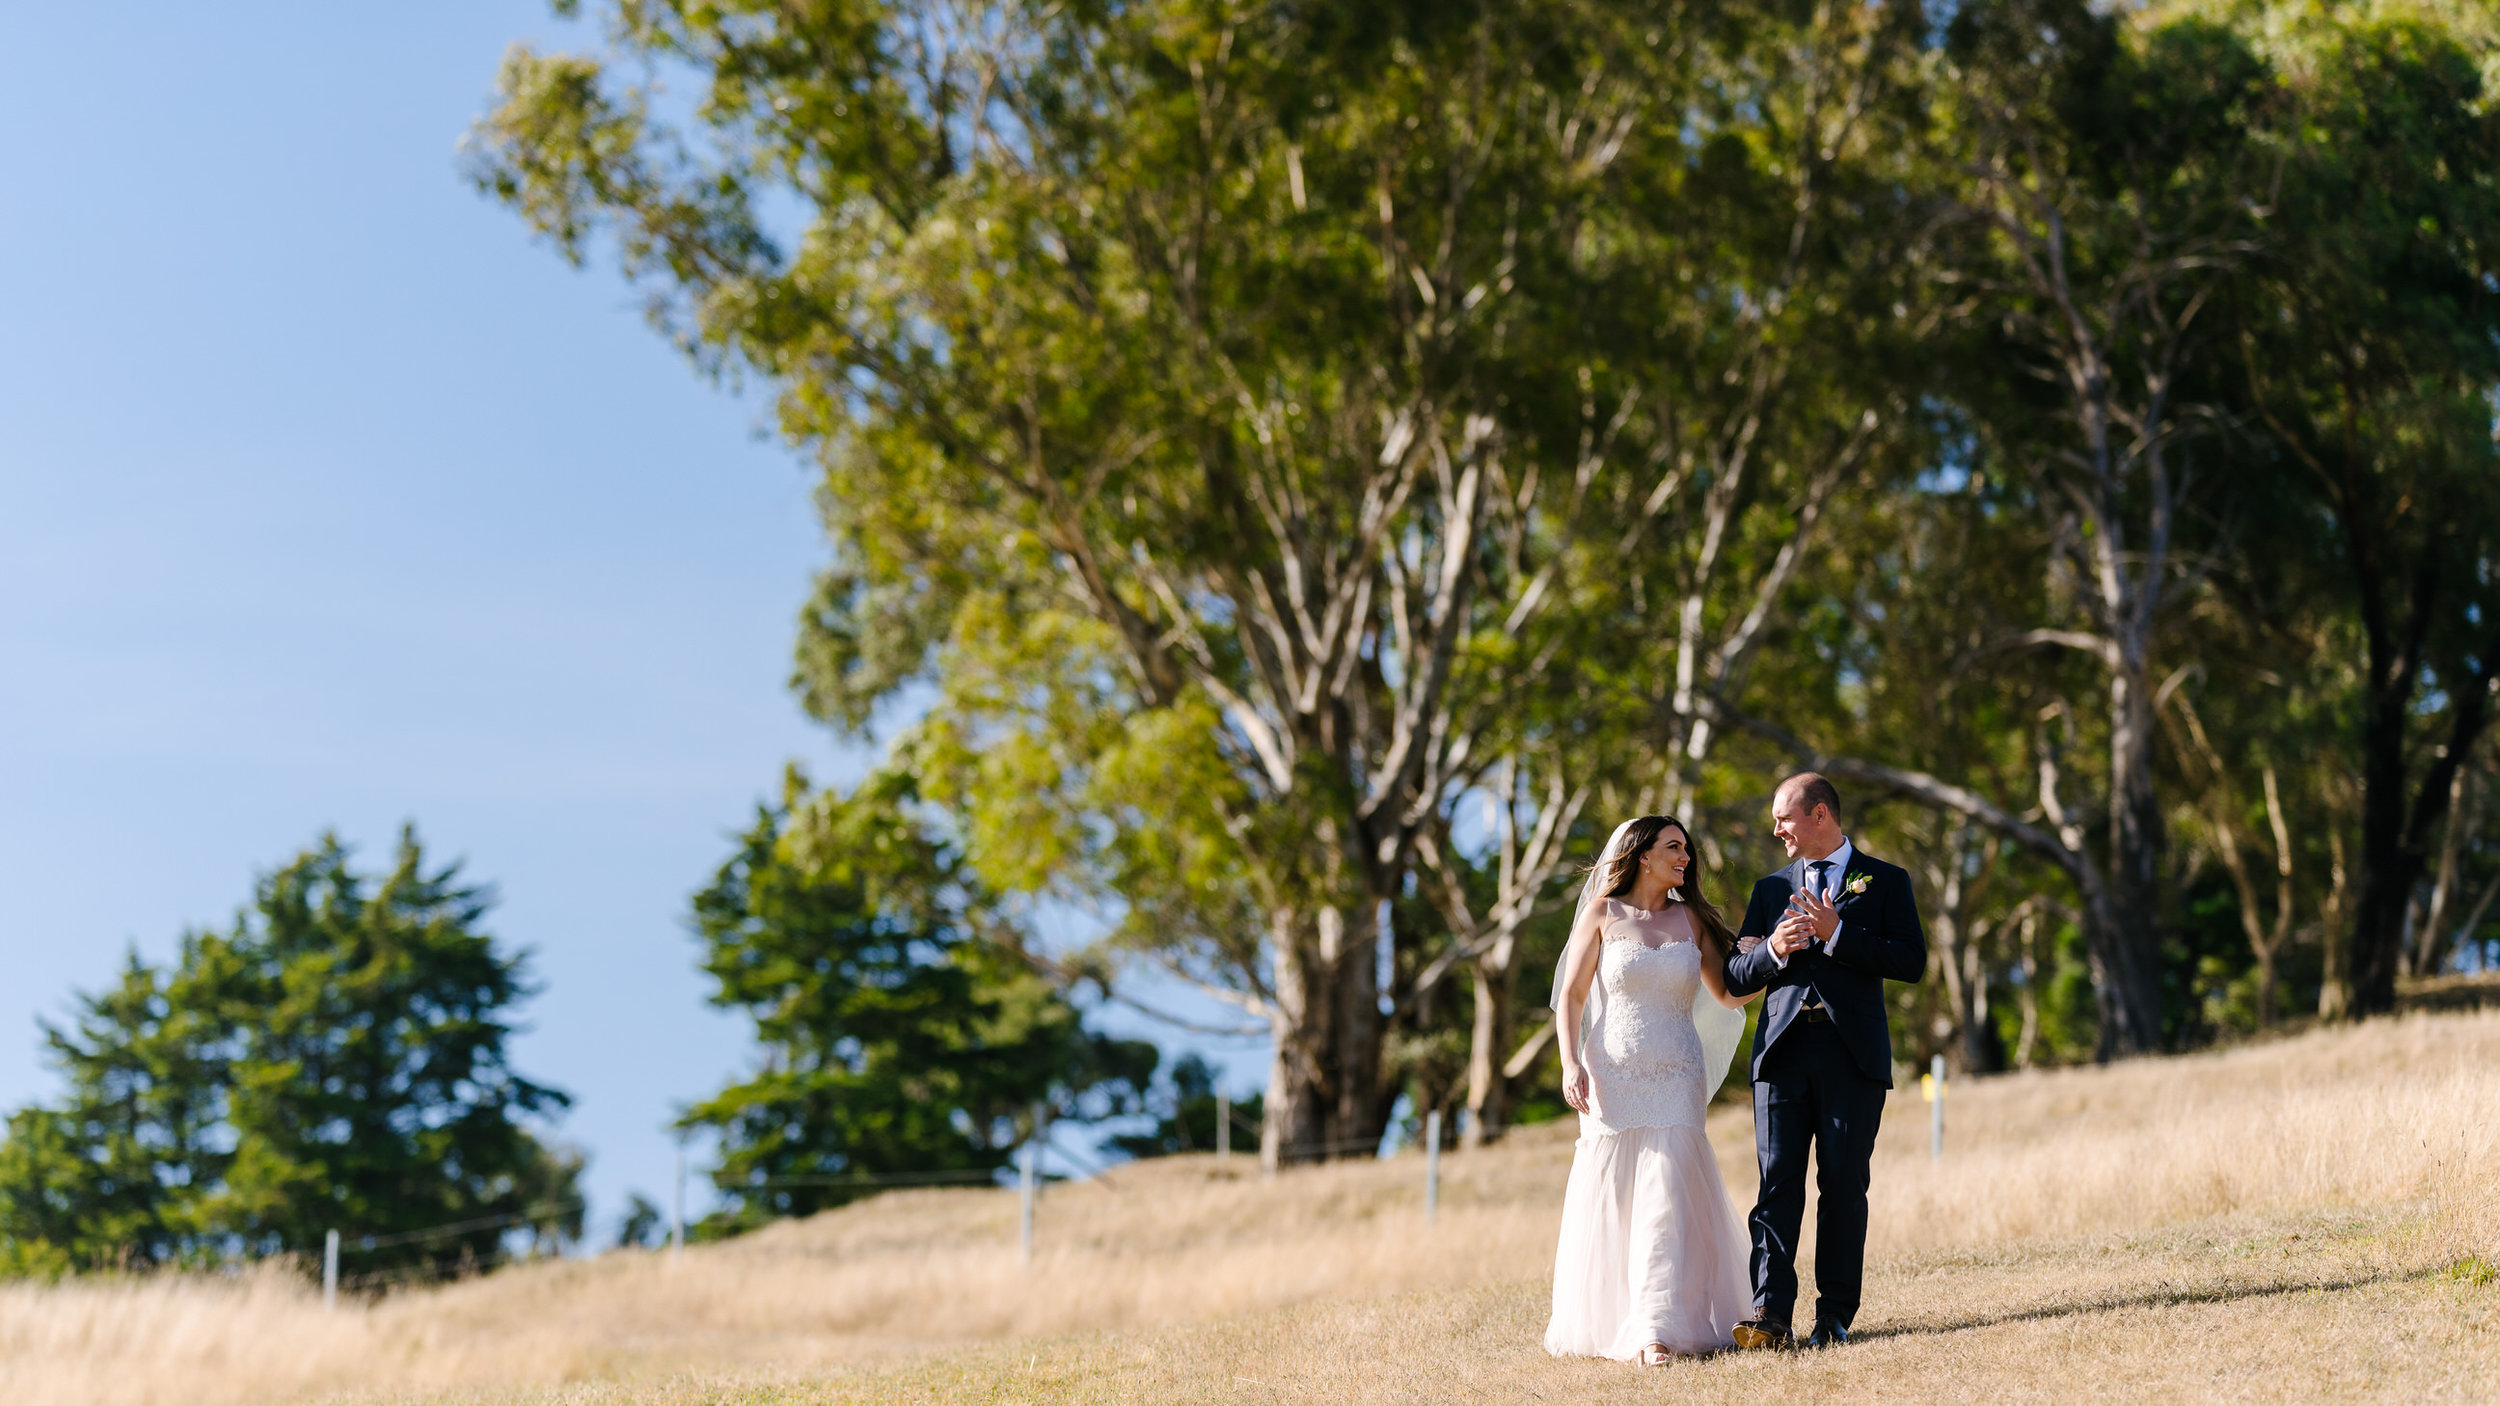 Justin_And_Jim_Photography_Balgownie_Winery_Wedding43.JPG